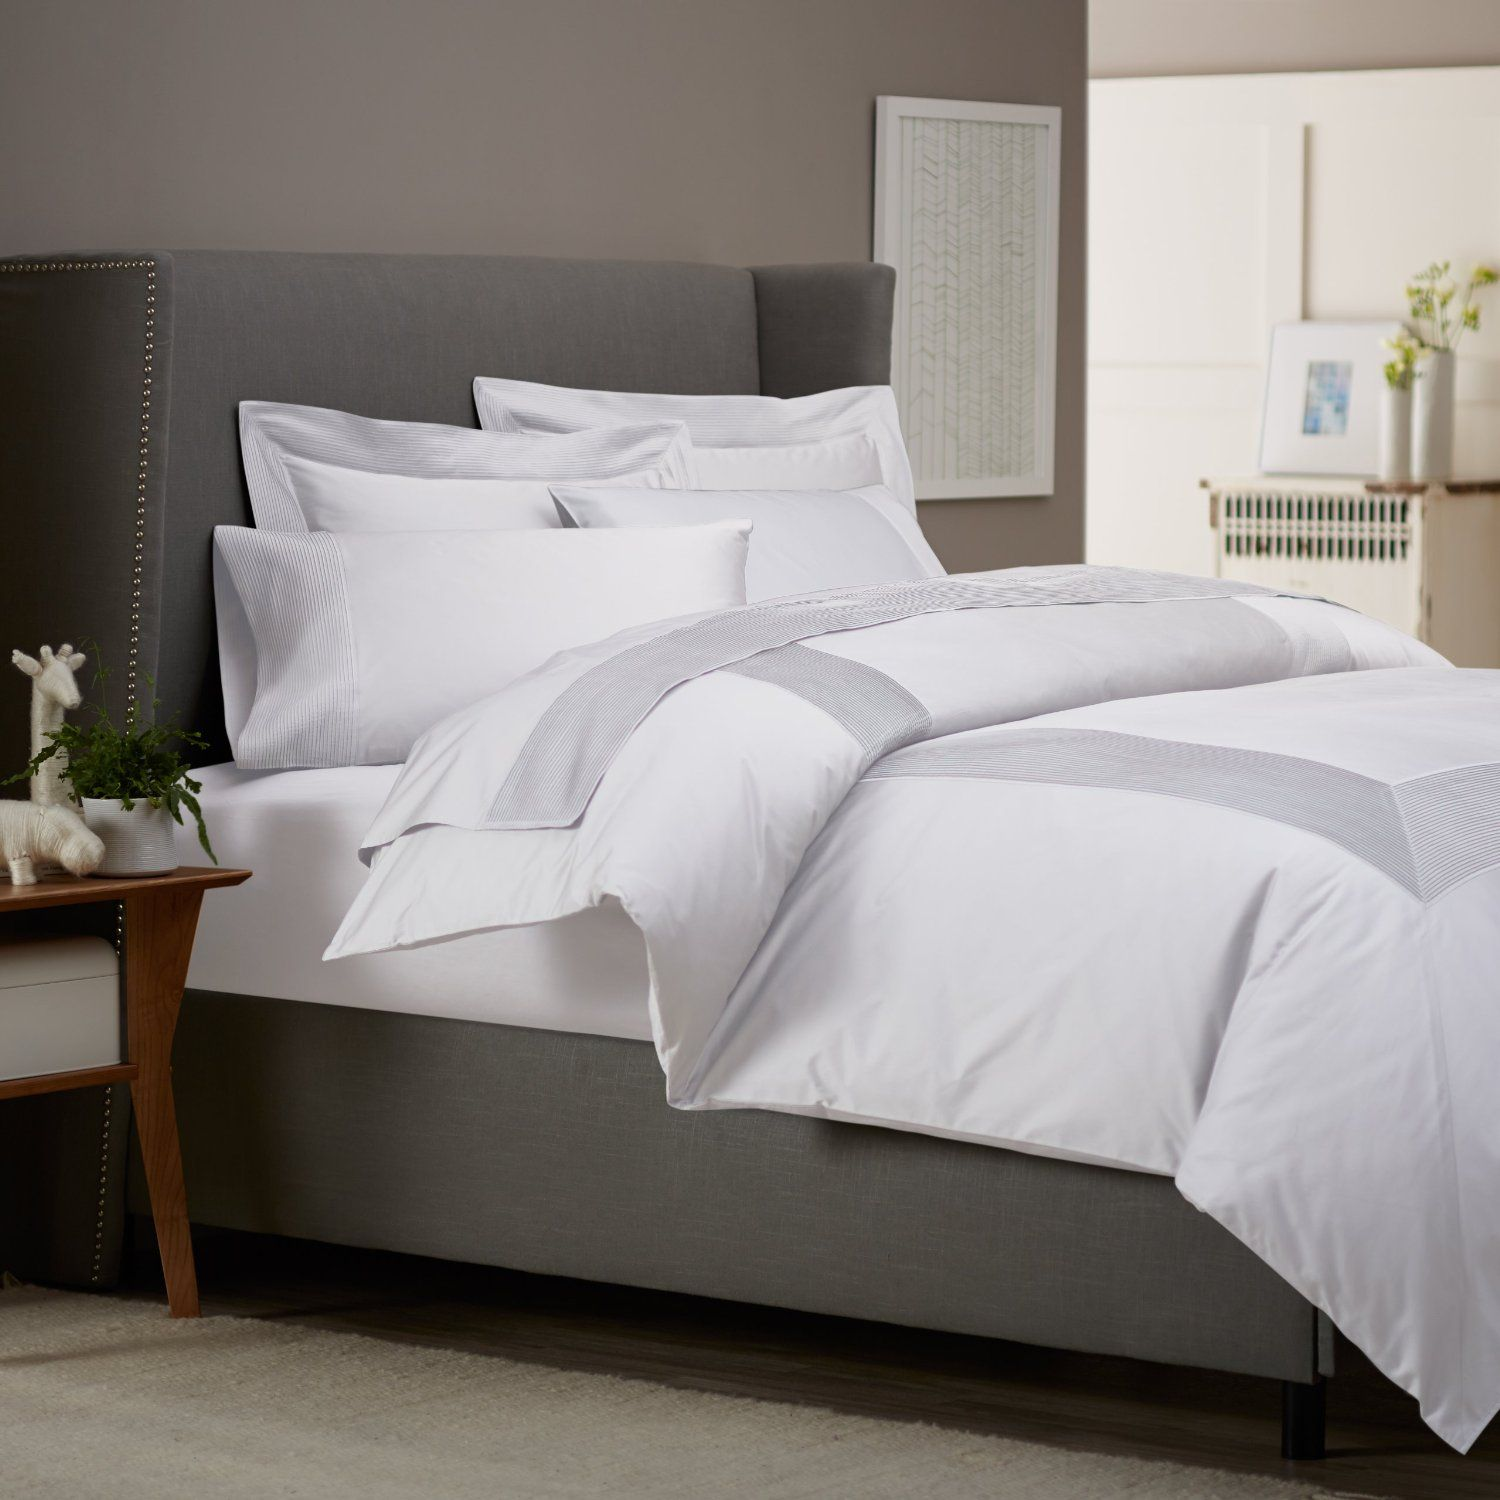 White king bed set - Statue Of Get Alluring Visage By Displaying A White Comforter Sets King